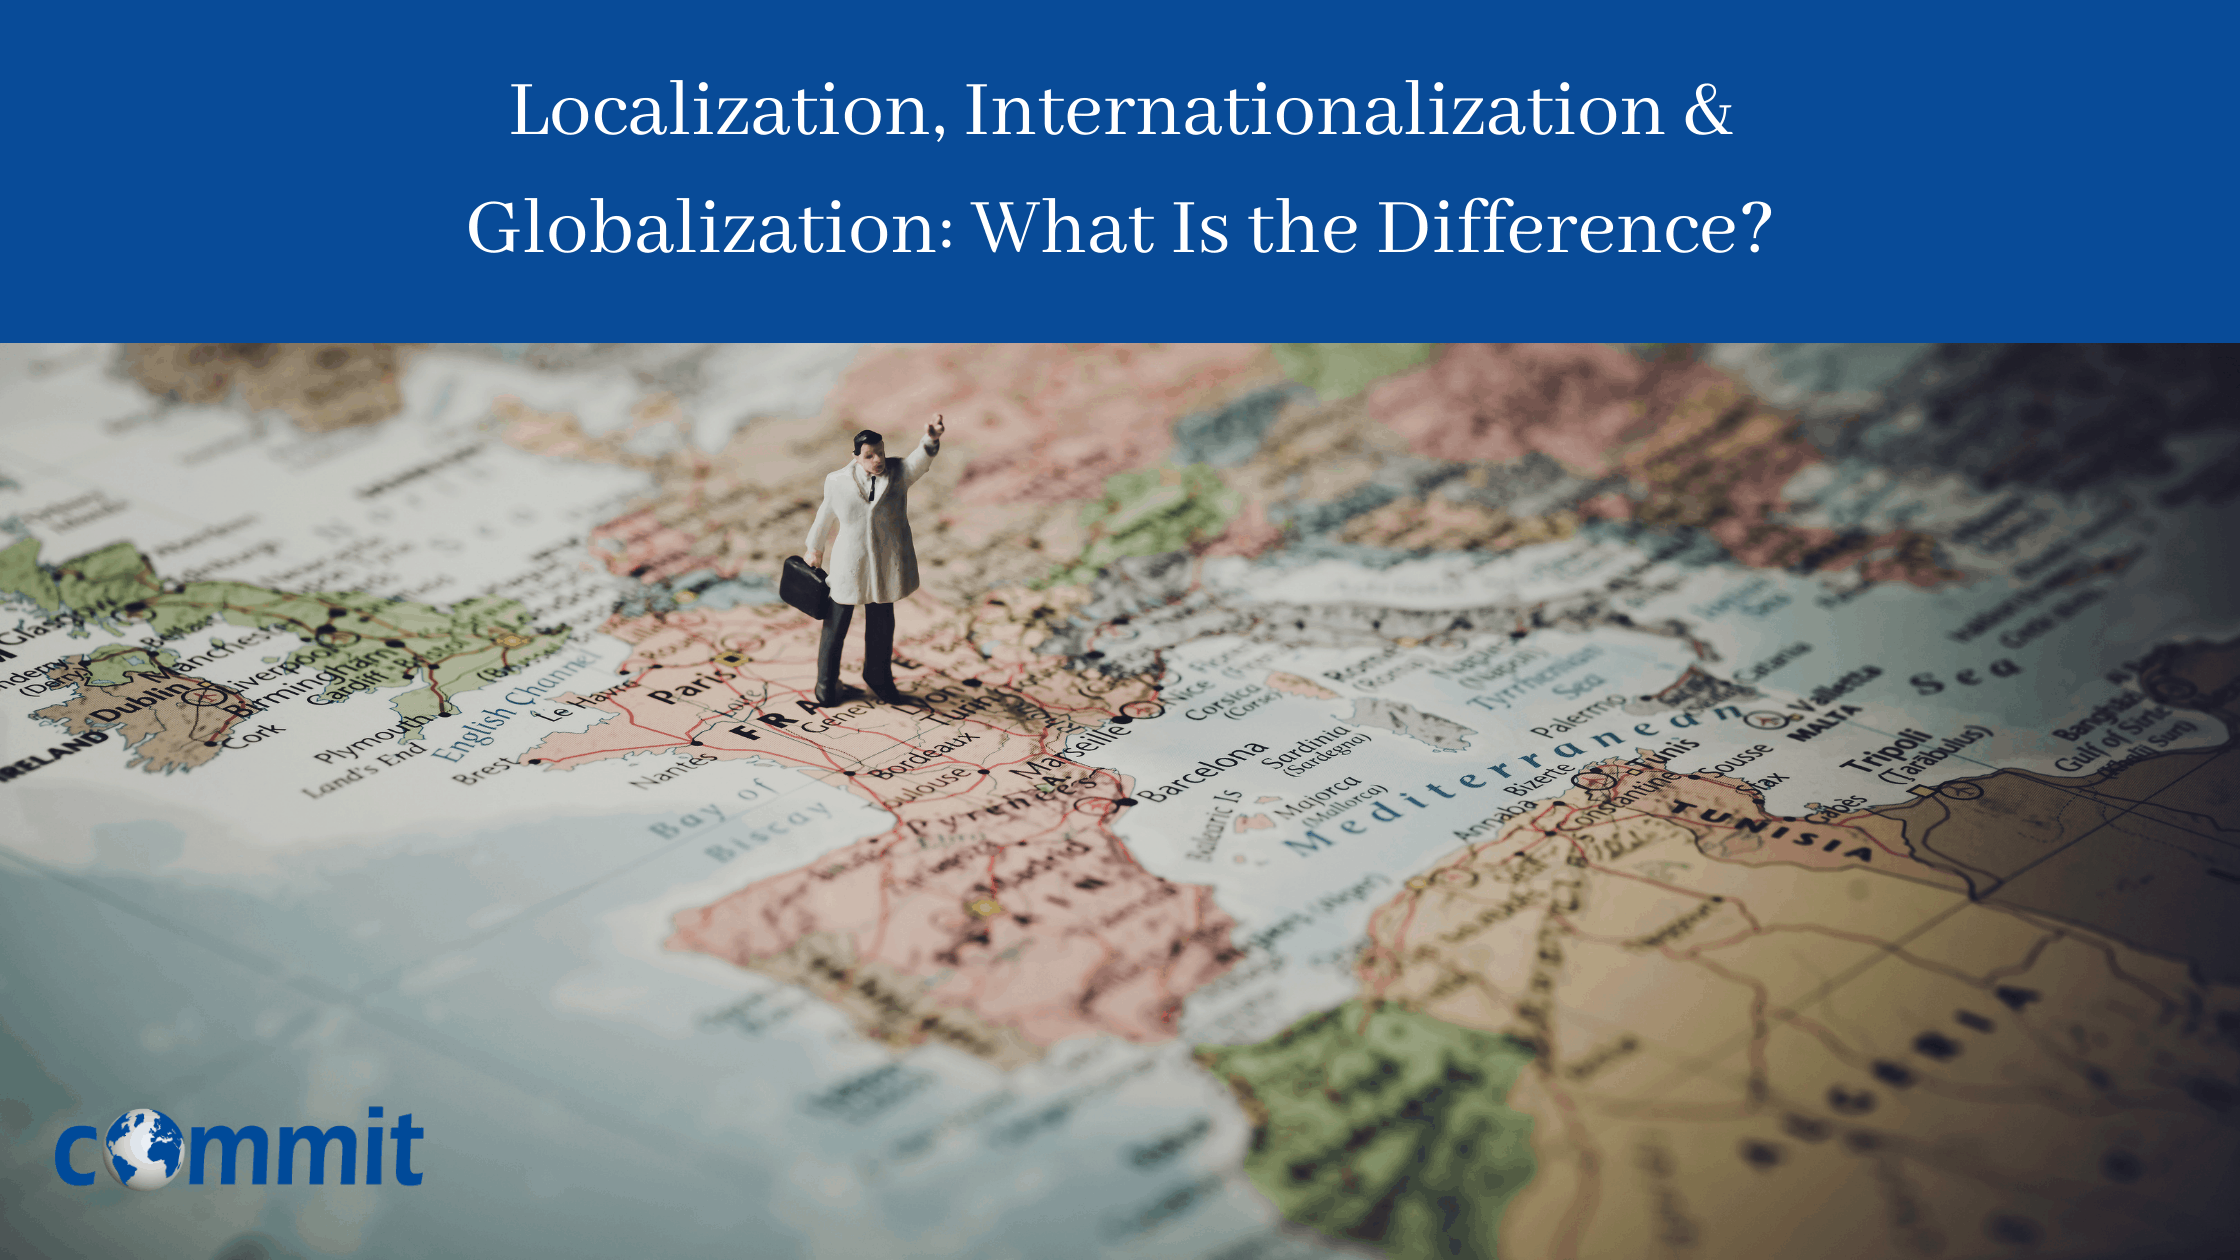 Localization, Internationalization & Globalization: What Is the Difference?